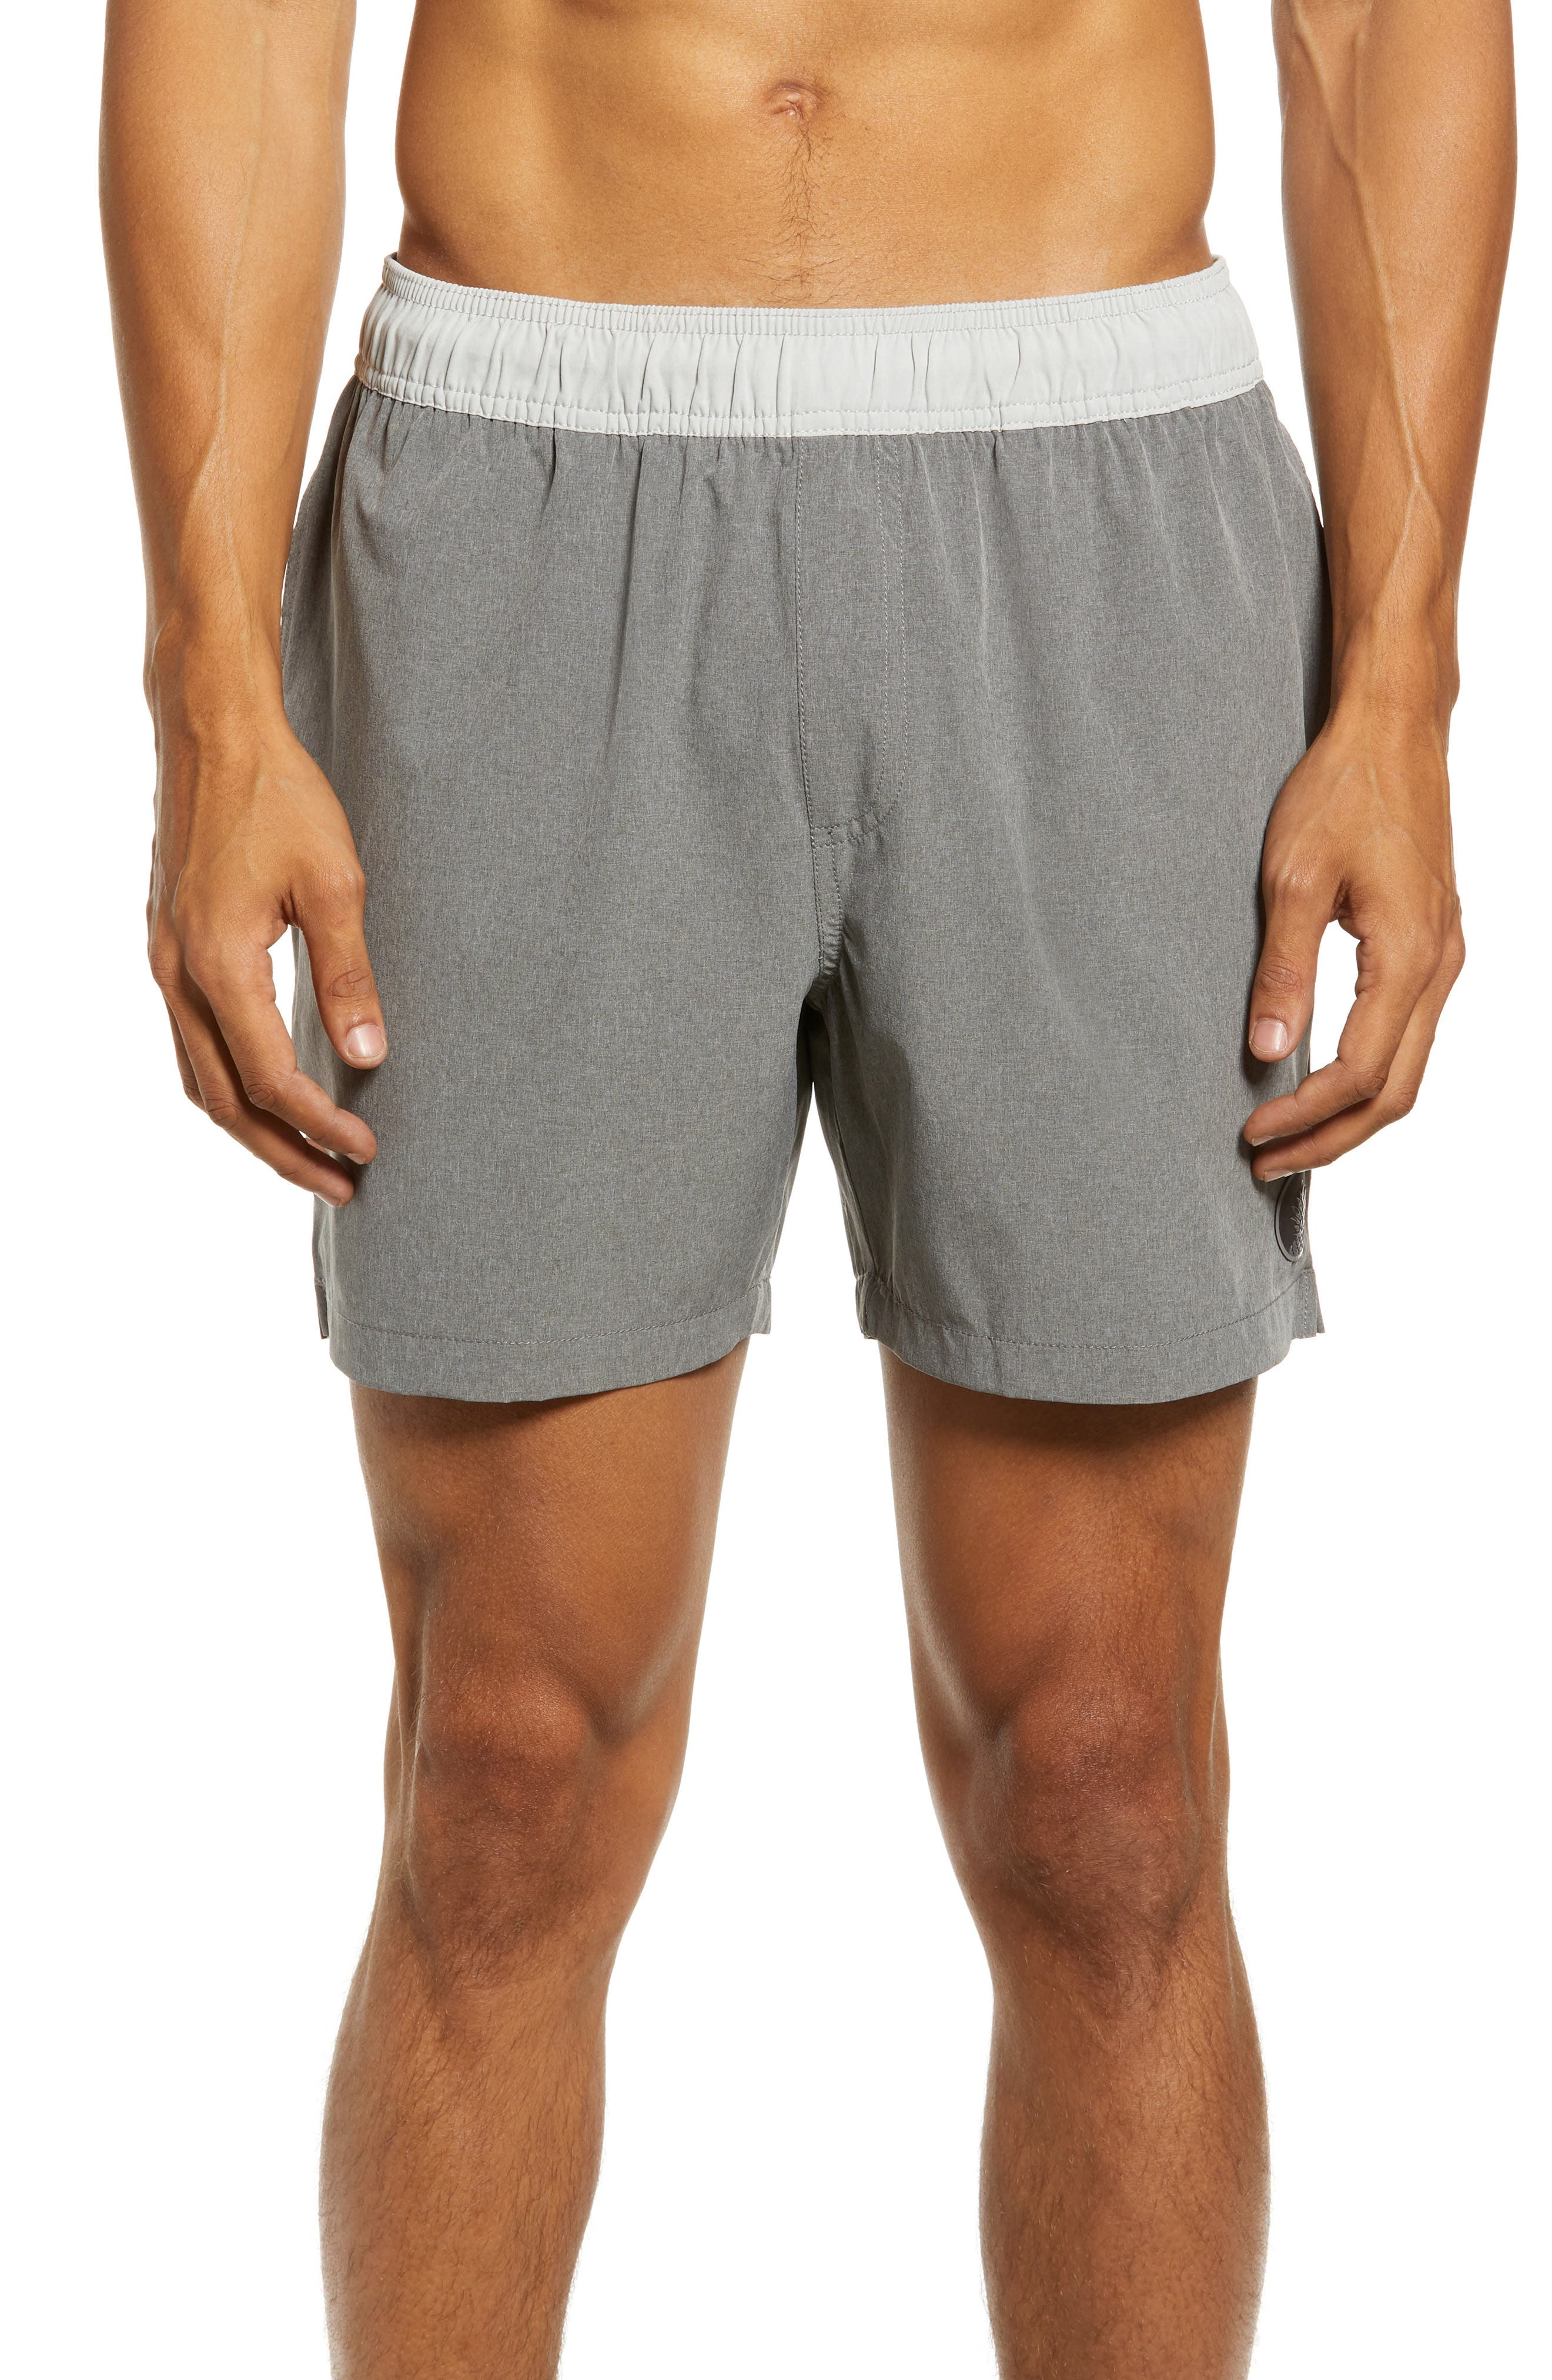 The Two Tones Hybrid Shorts